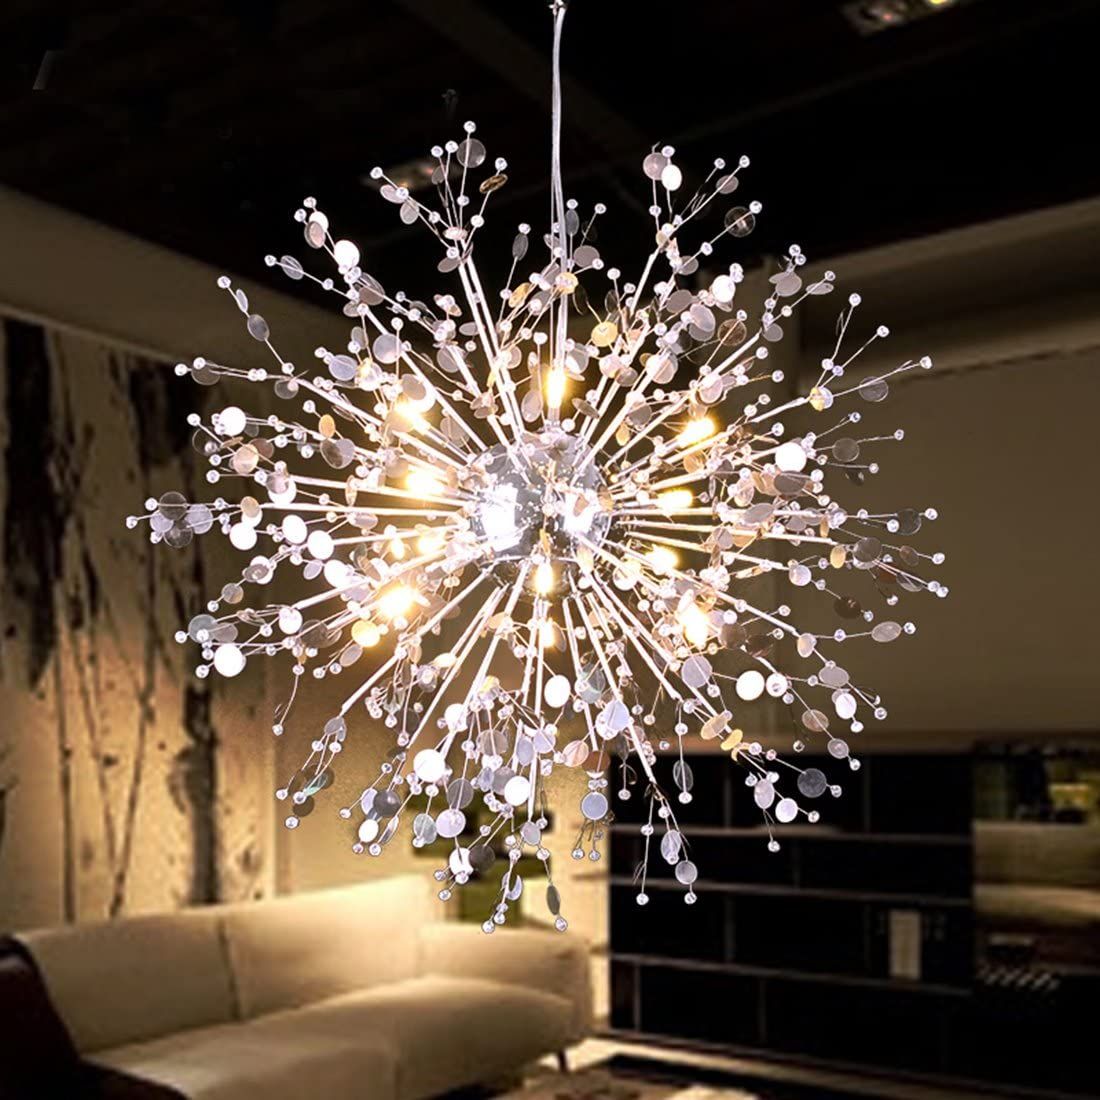 GDNS 8 Pcs Lights Chandeliers Firework LED Light Stainless Steel Crystal Pendant Lighting Ceiling Light Fixtures Chandeliers Lighting,Dia 19.6 inch